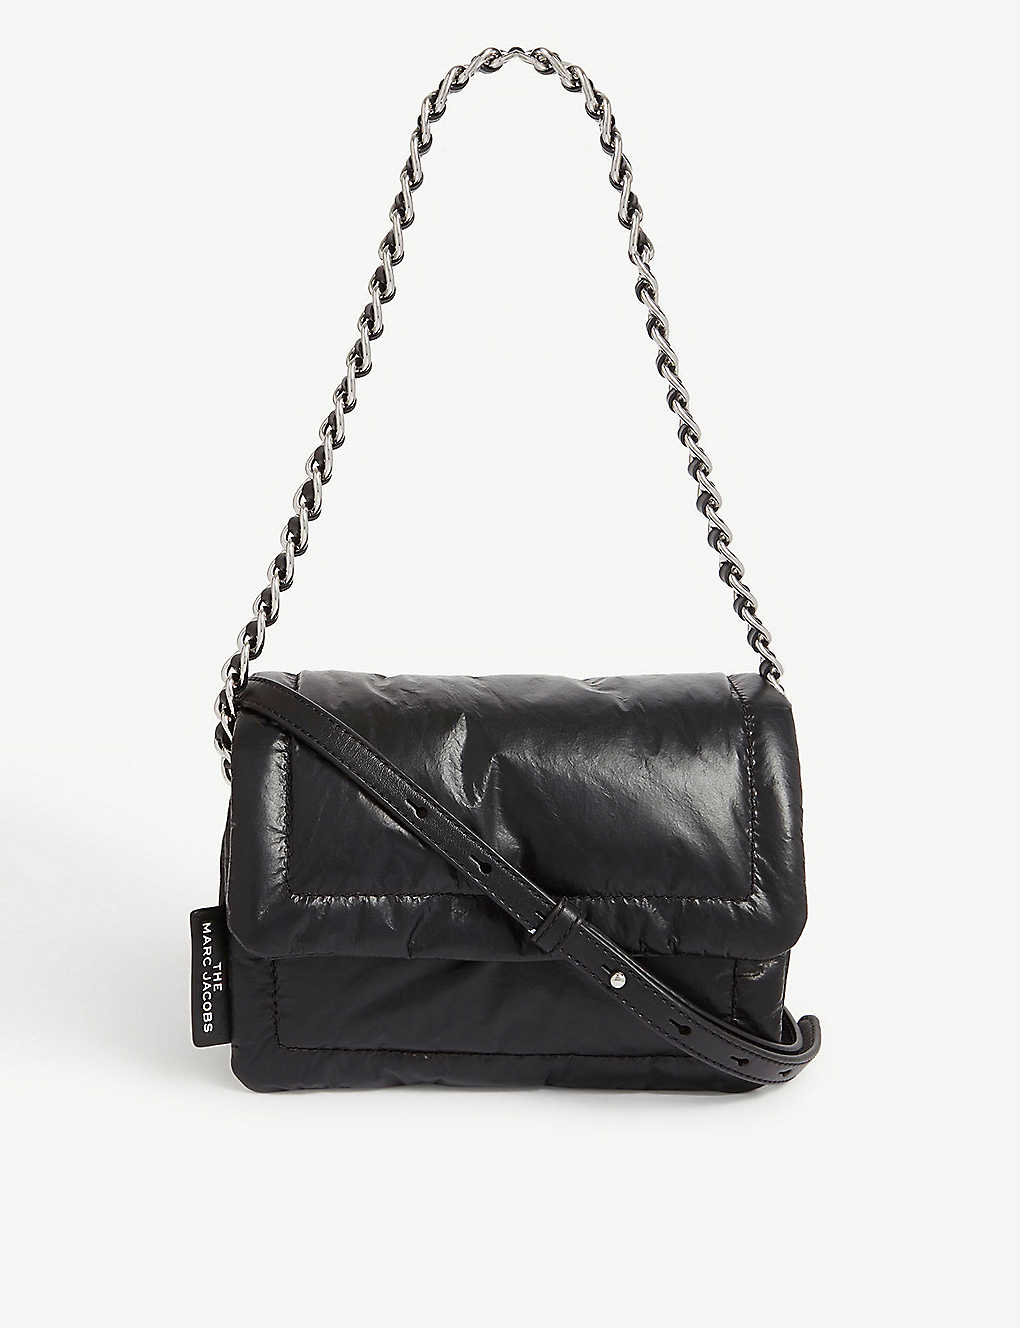 MARC JACOBS: Pillow leather mini bag